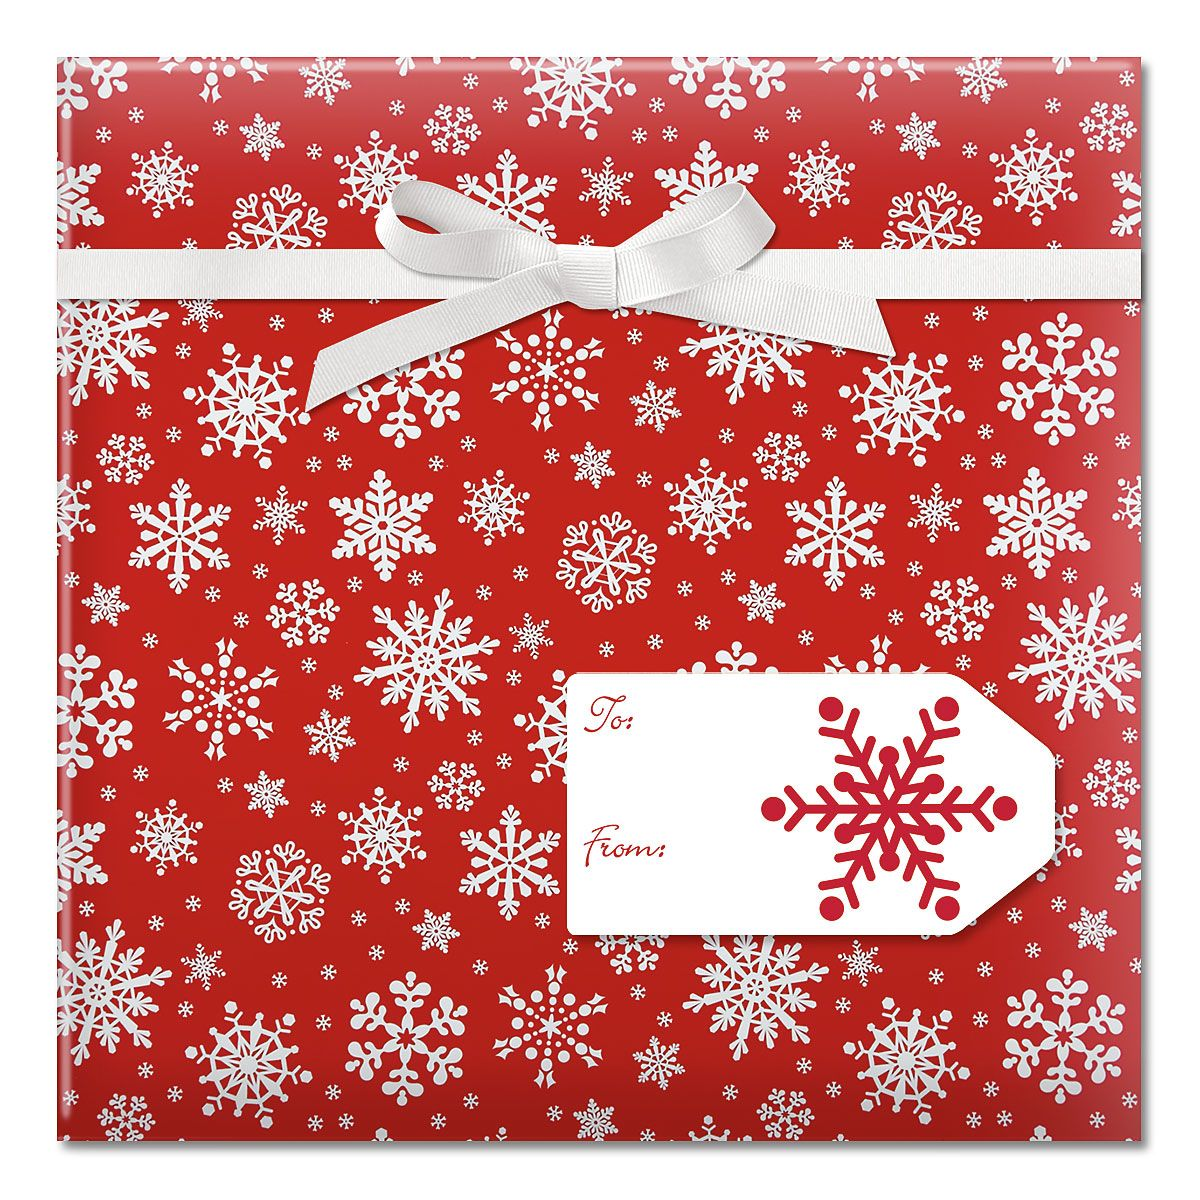 Snowflake on Red Jumbo Rolled Gift Wrap